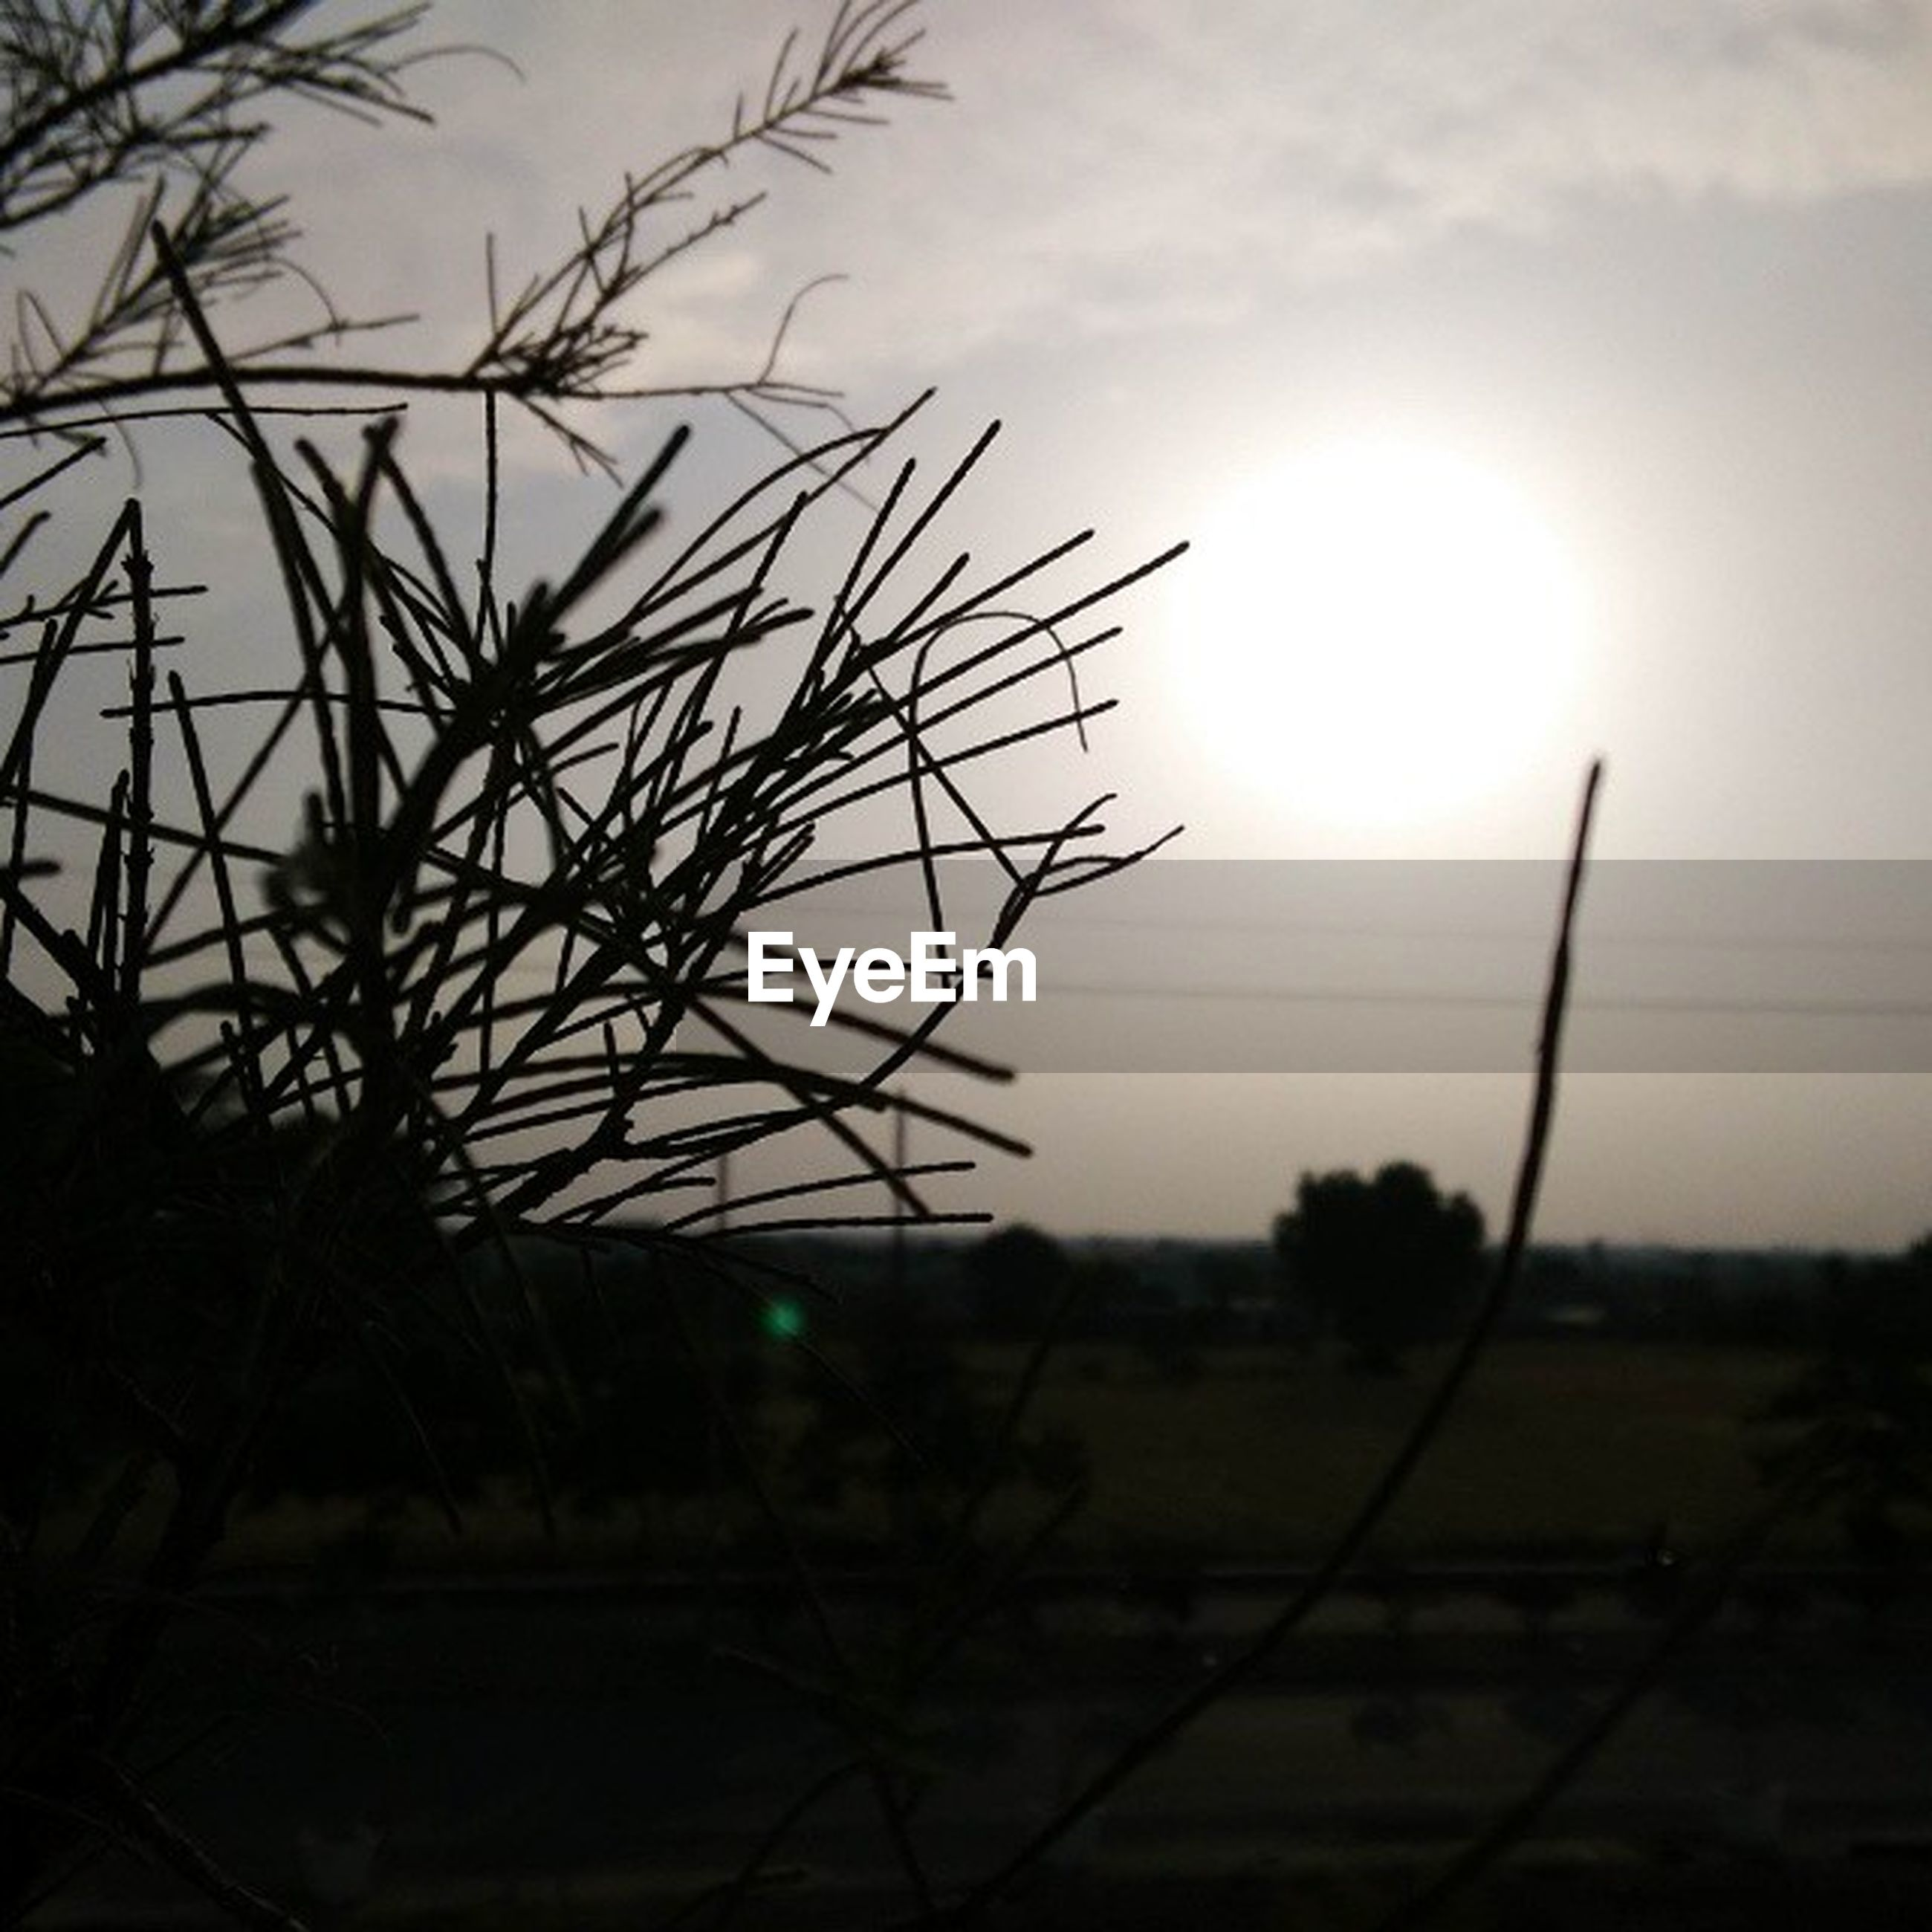 sun, sunset, silhouette, sky, nature, tranquility, field, beauty in nature, growth, tranquil scene, scenics, sunlight, plant, landscape, focus on foreground, bare tree, lens flare, outdoors, branch, close-up